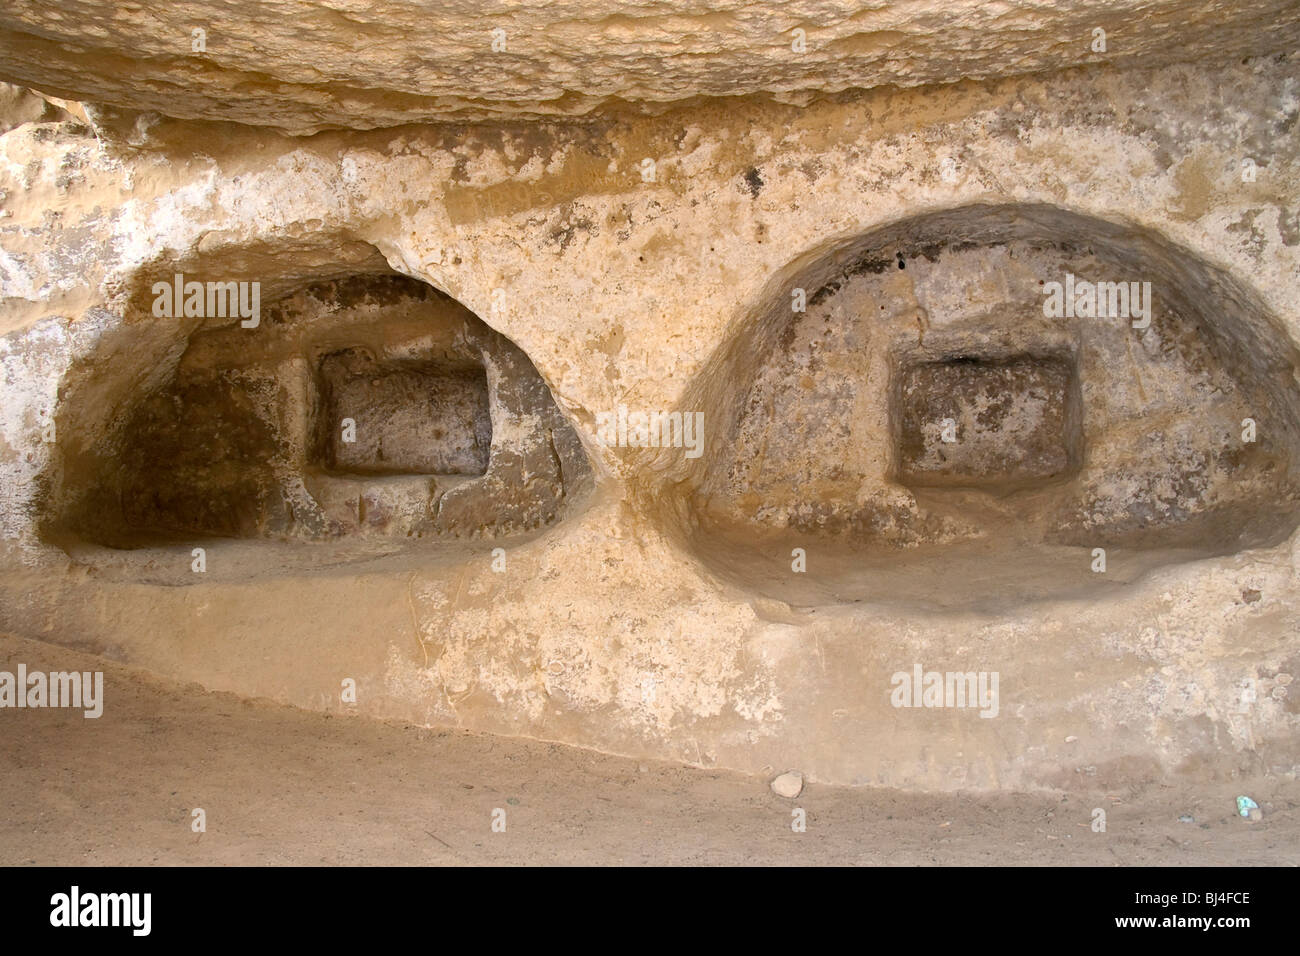 Prehistoric cave dwellings in Matala, Crete, Greece, Europe - Stock Image